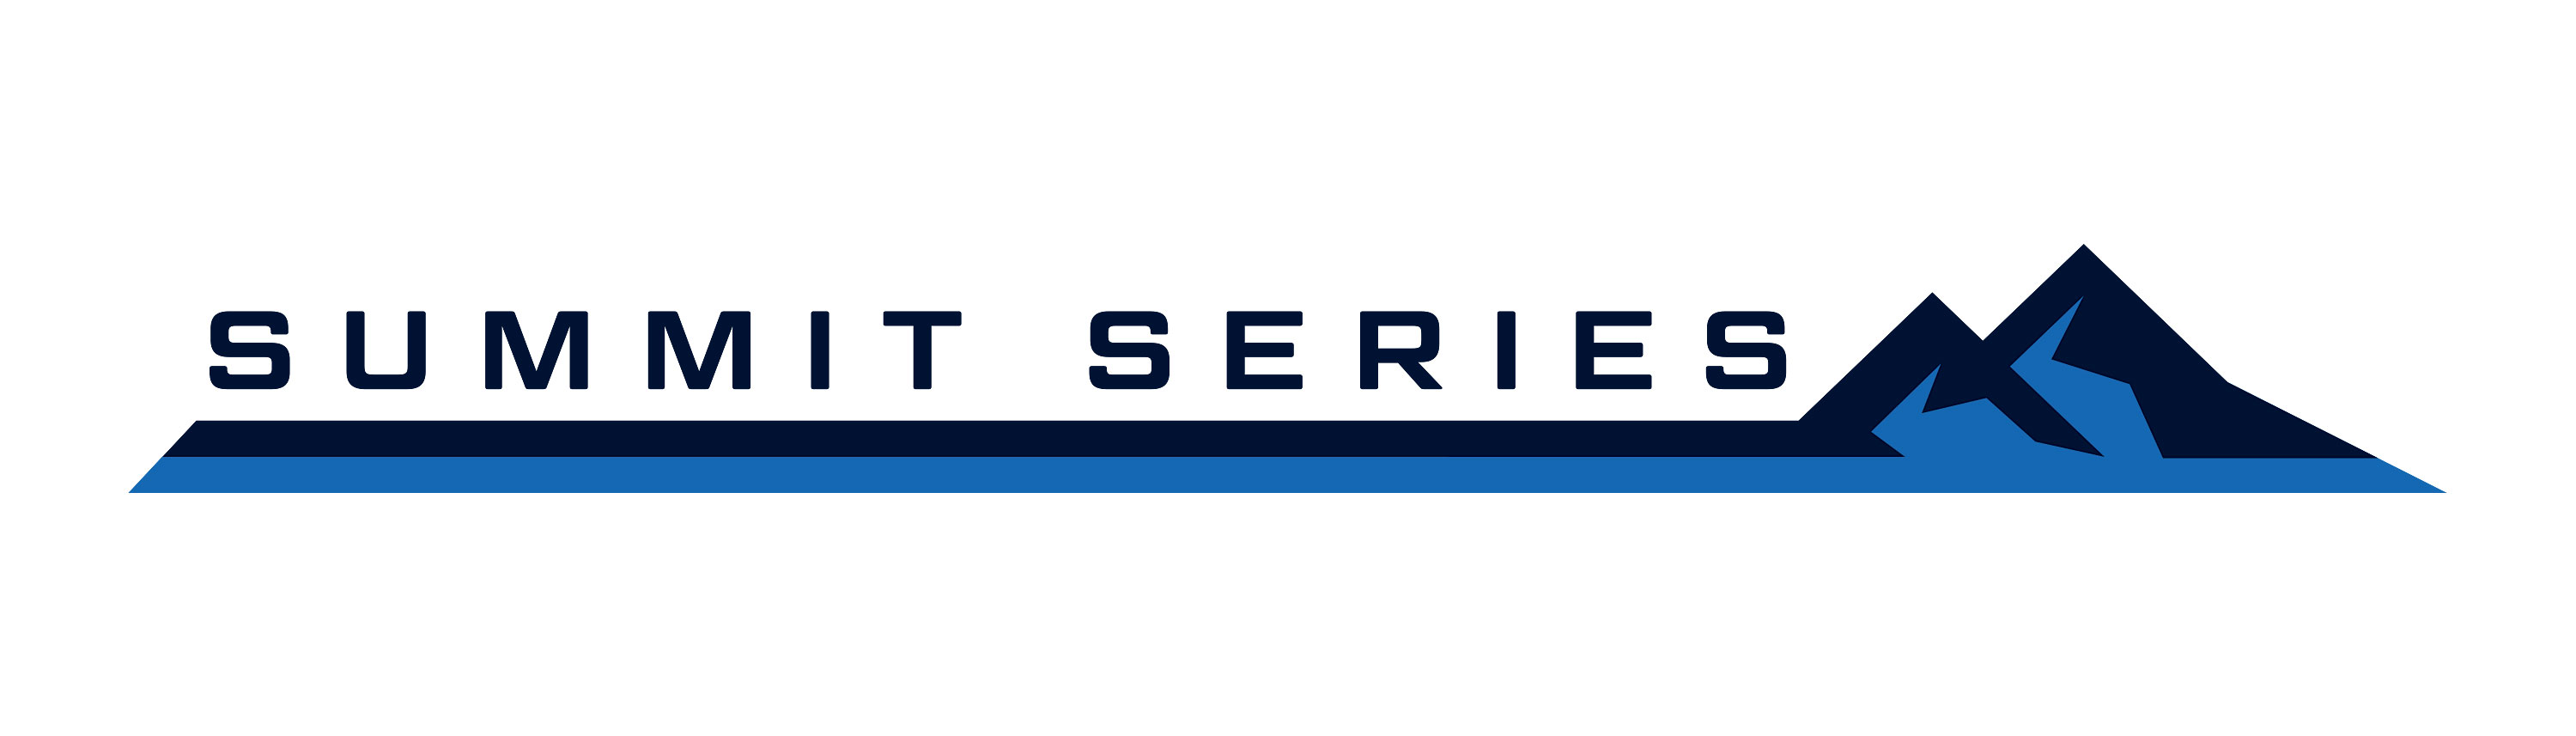 Catalina Summit Series 8 Travel Trailer Logo